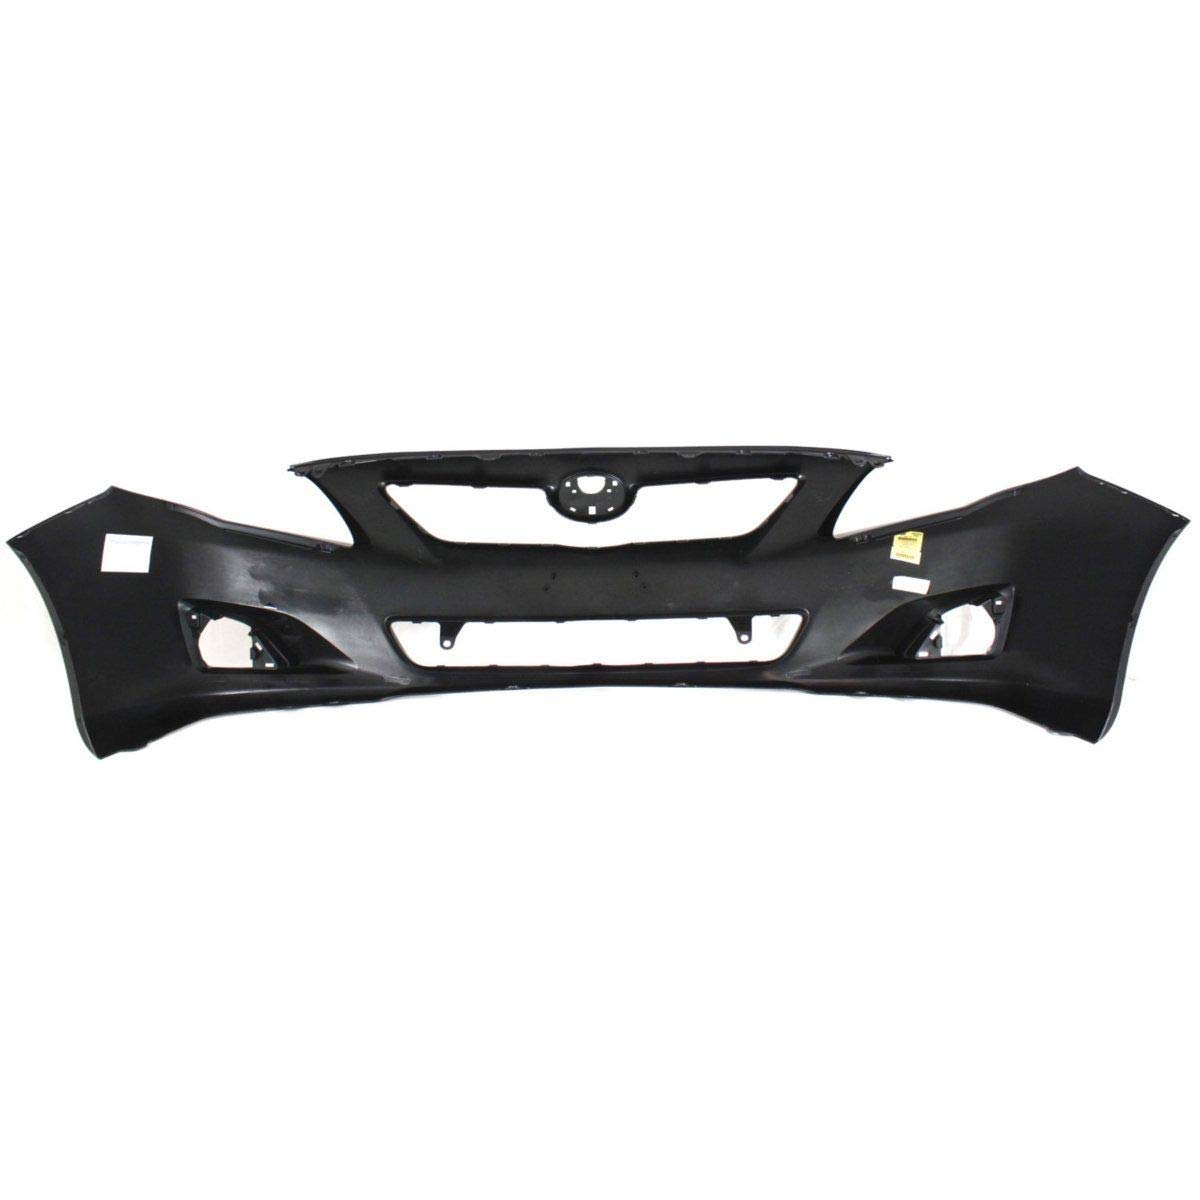 New TO1000343C CAPA Front Bumper Cover for Toyota Corolla 2009-2010